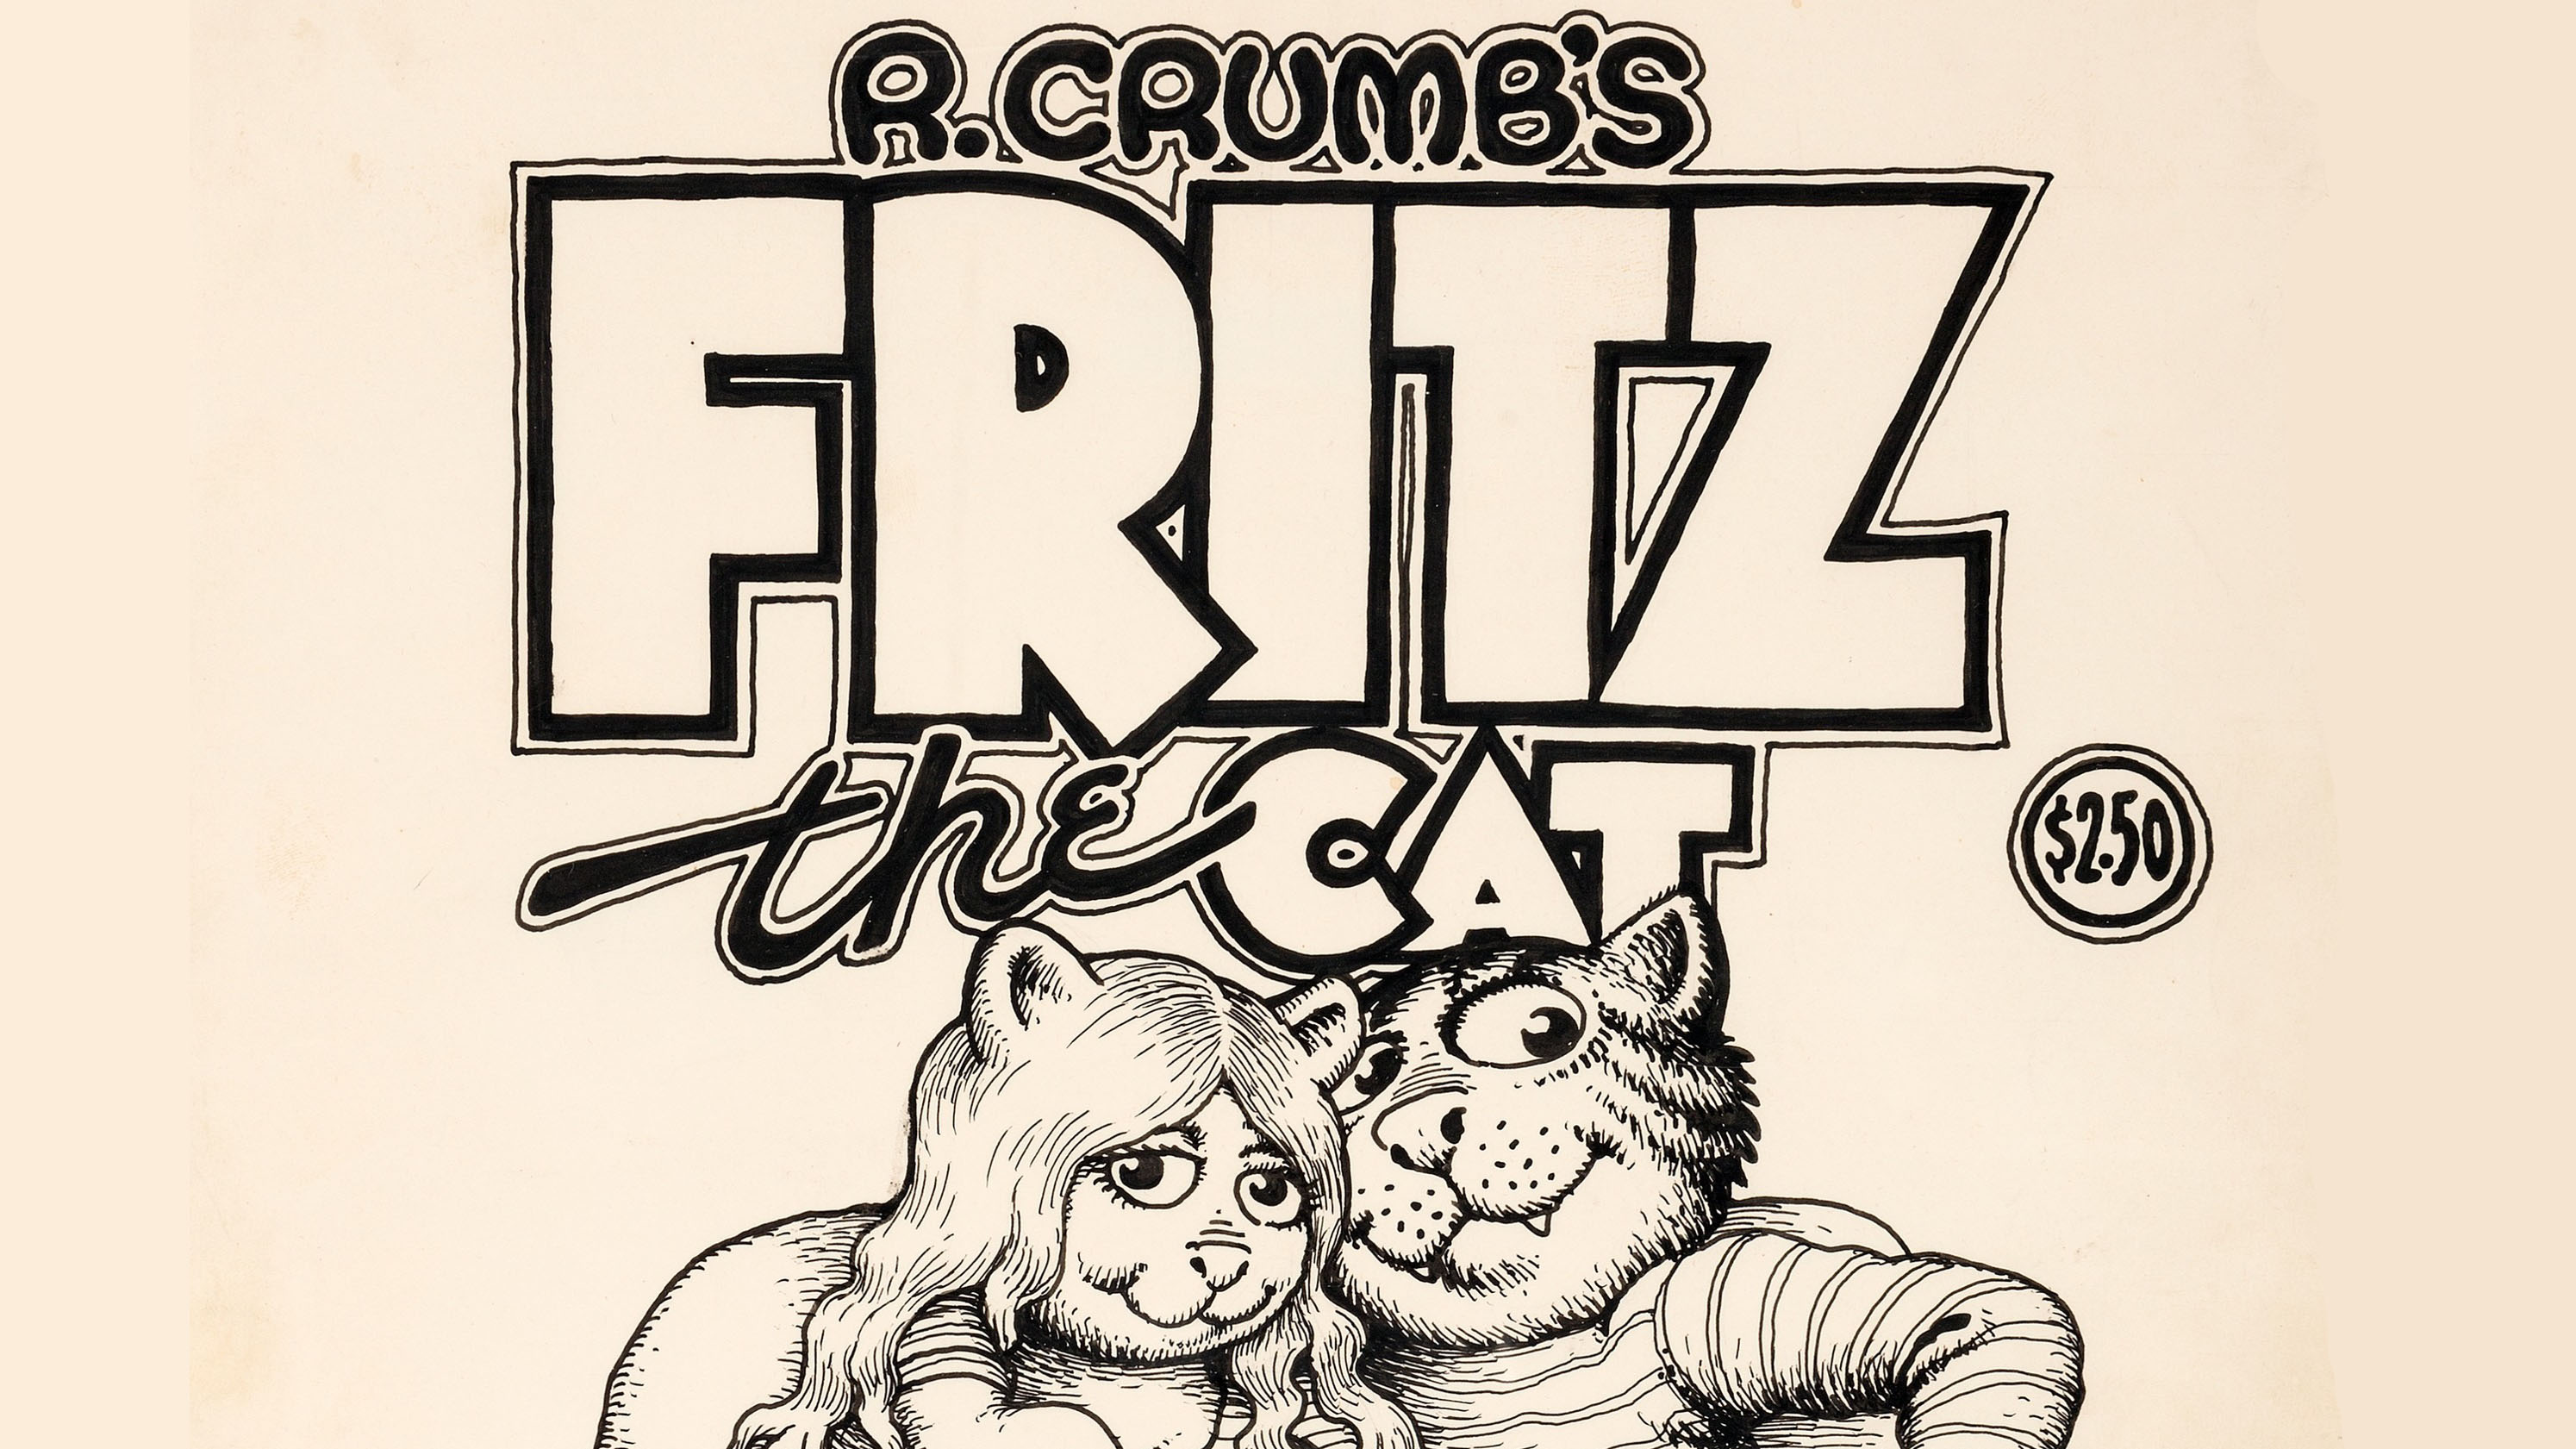 Robert Crumb 1969 Fritz The Cat Cover Art Sells For Record 717 000 At Auction